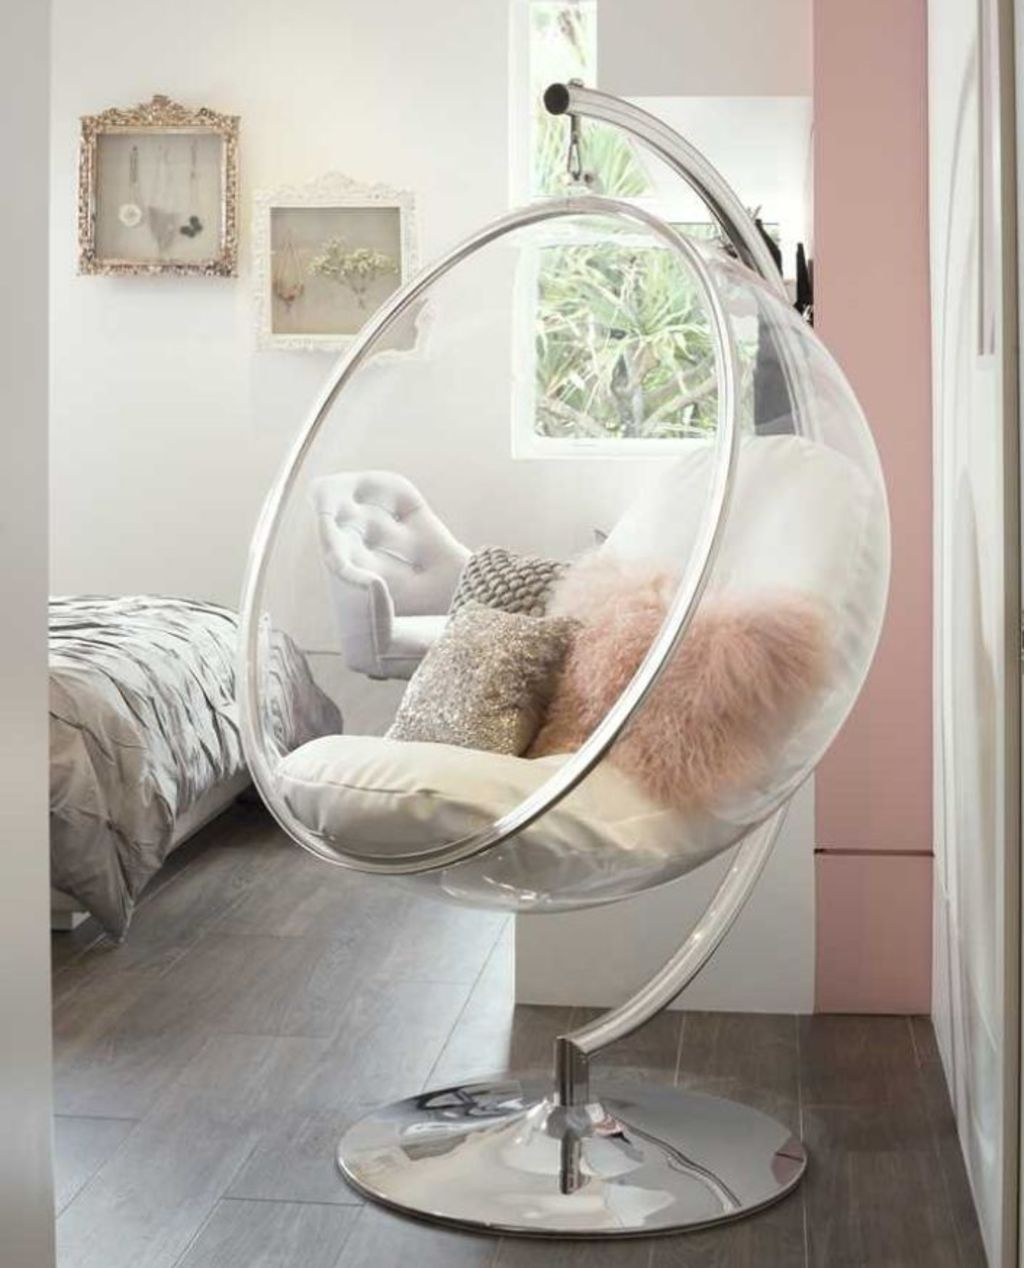 Futuristic furniture was all the rage during the early 2000s. Photo: Pouted.com